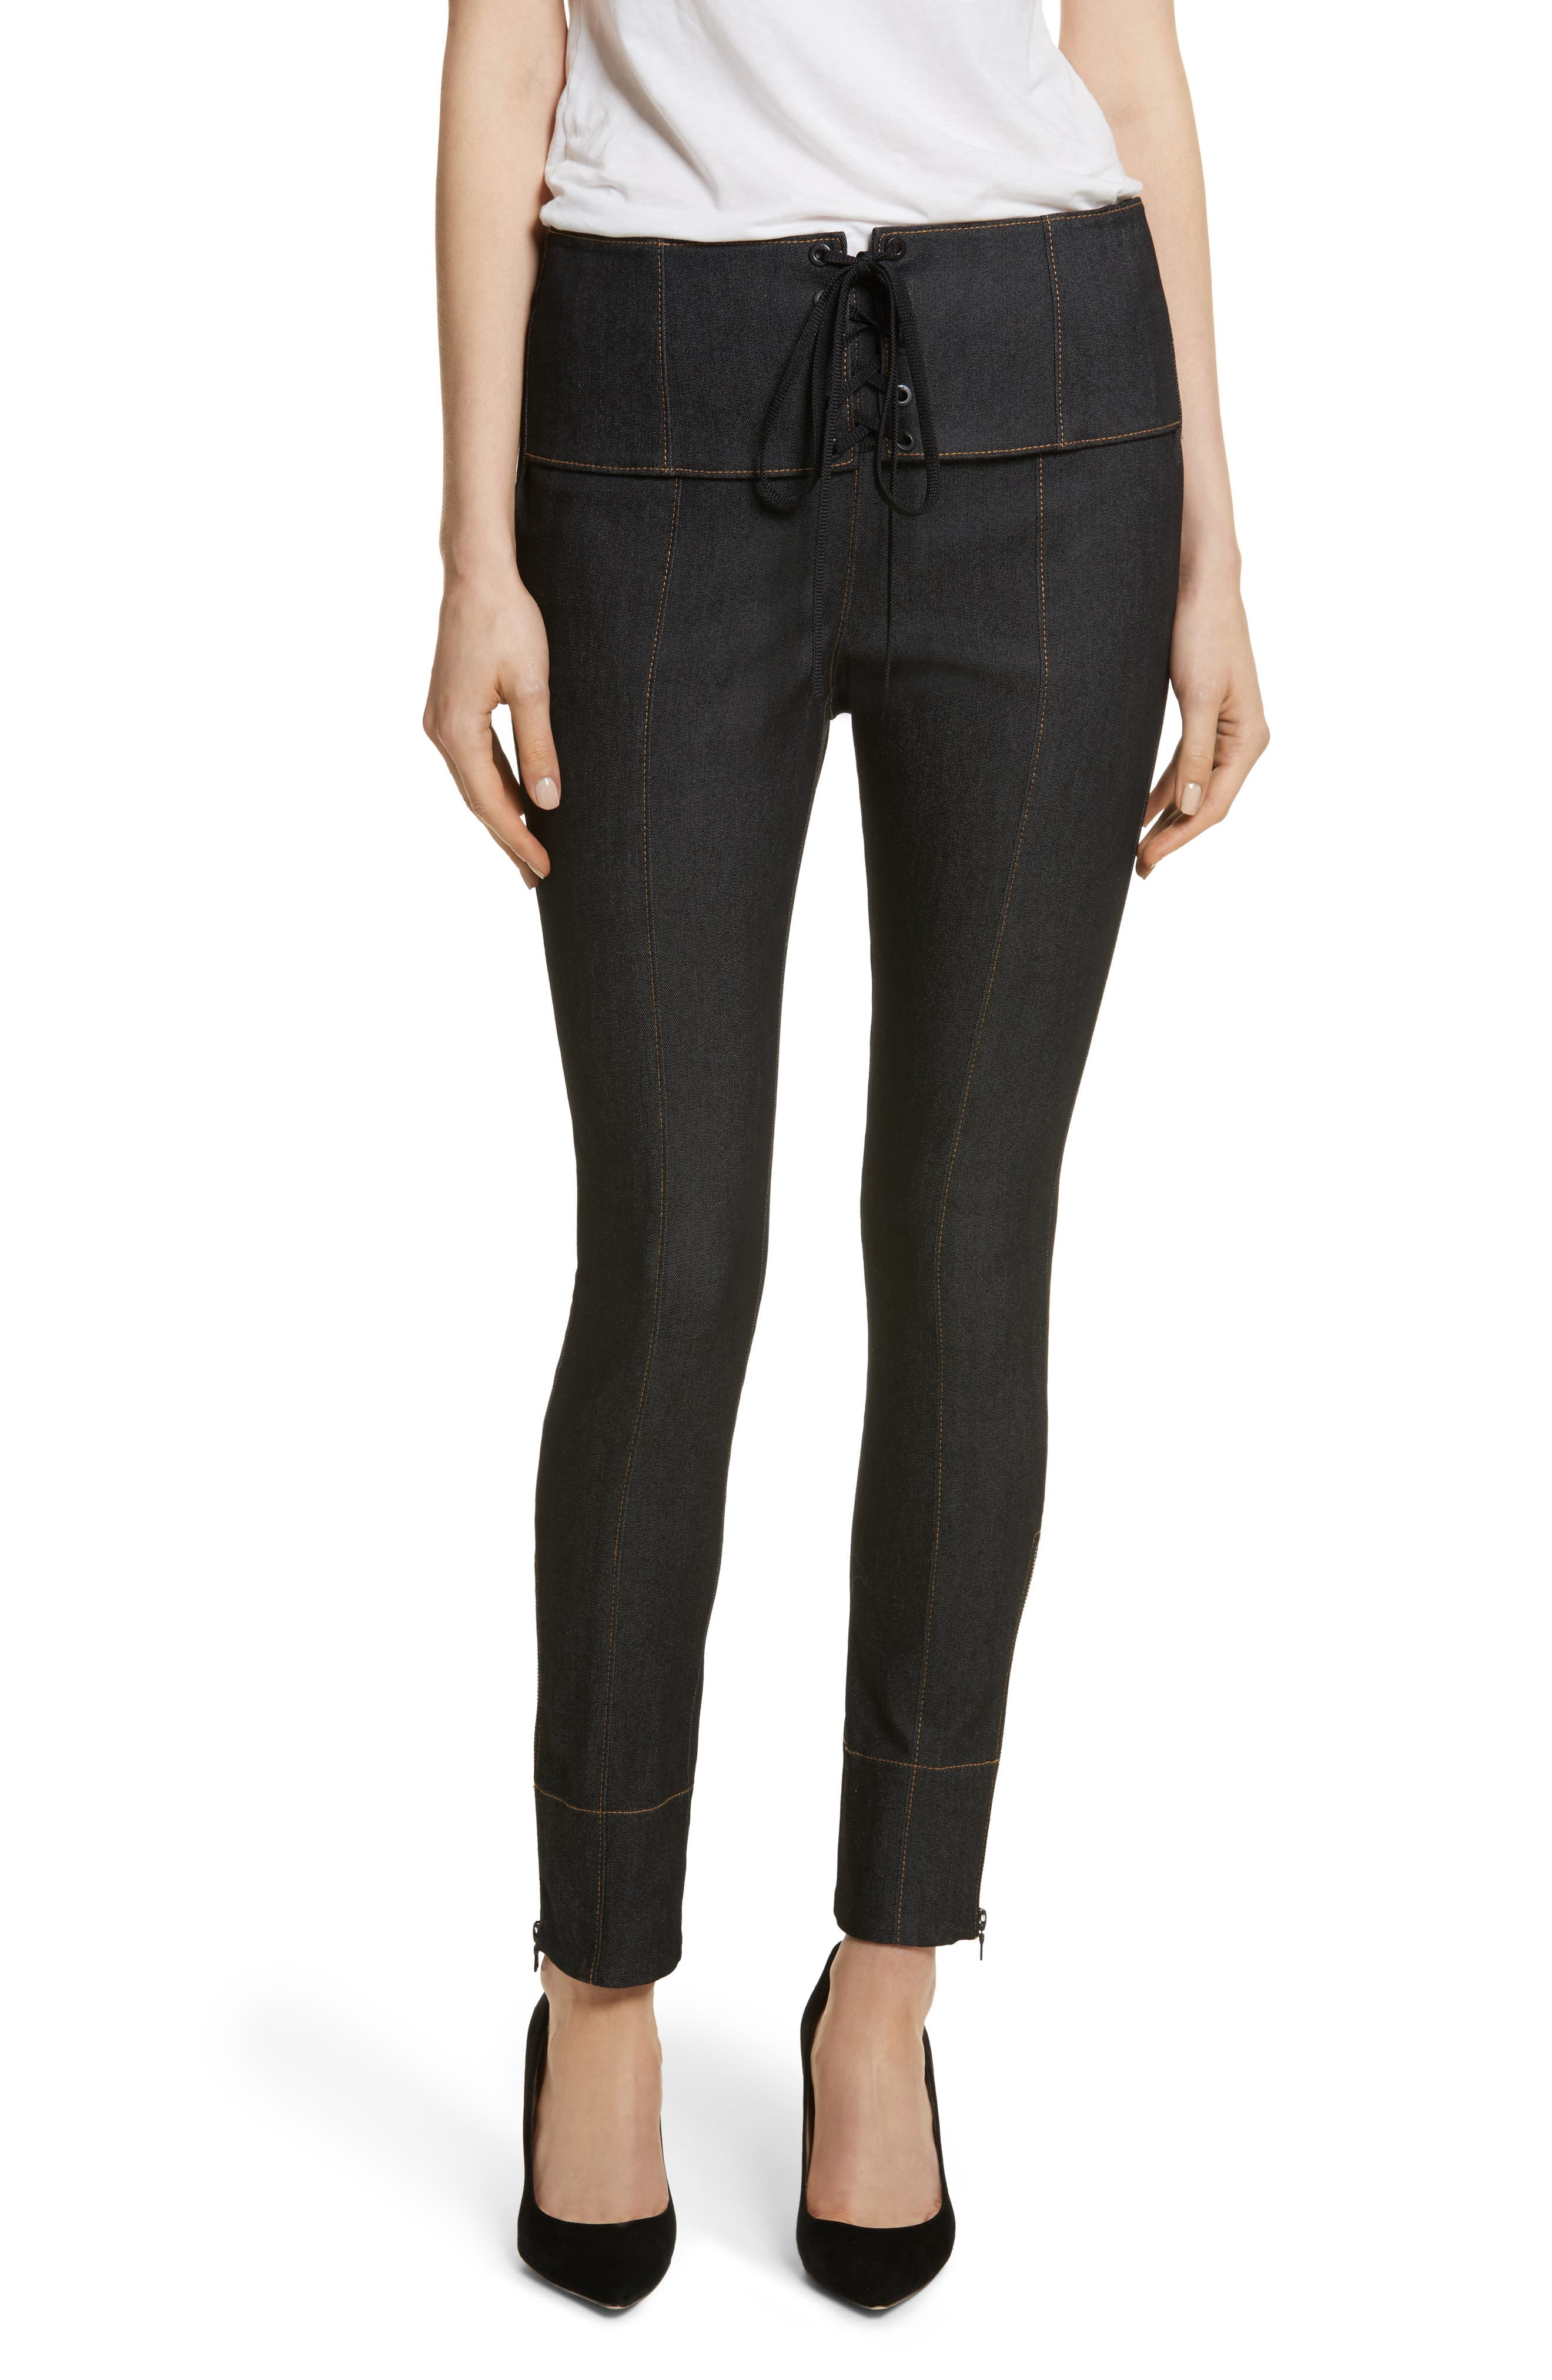 Andie Lace Front Skinny Ankle Jeans,                         Main,                         color, Black